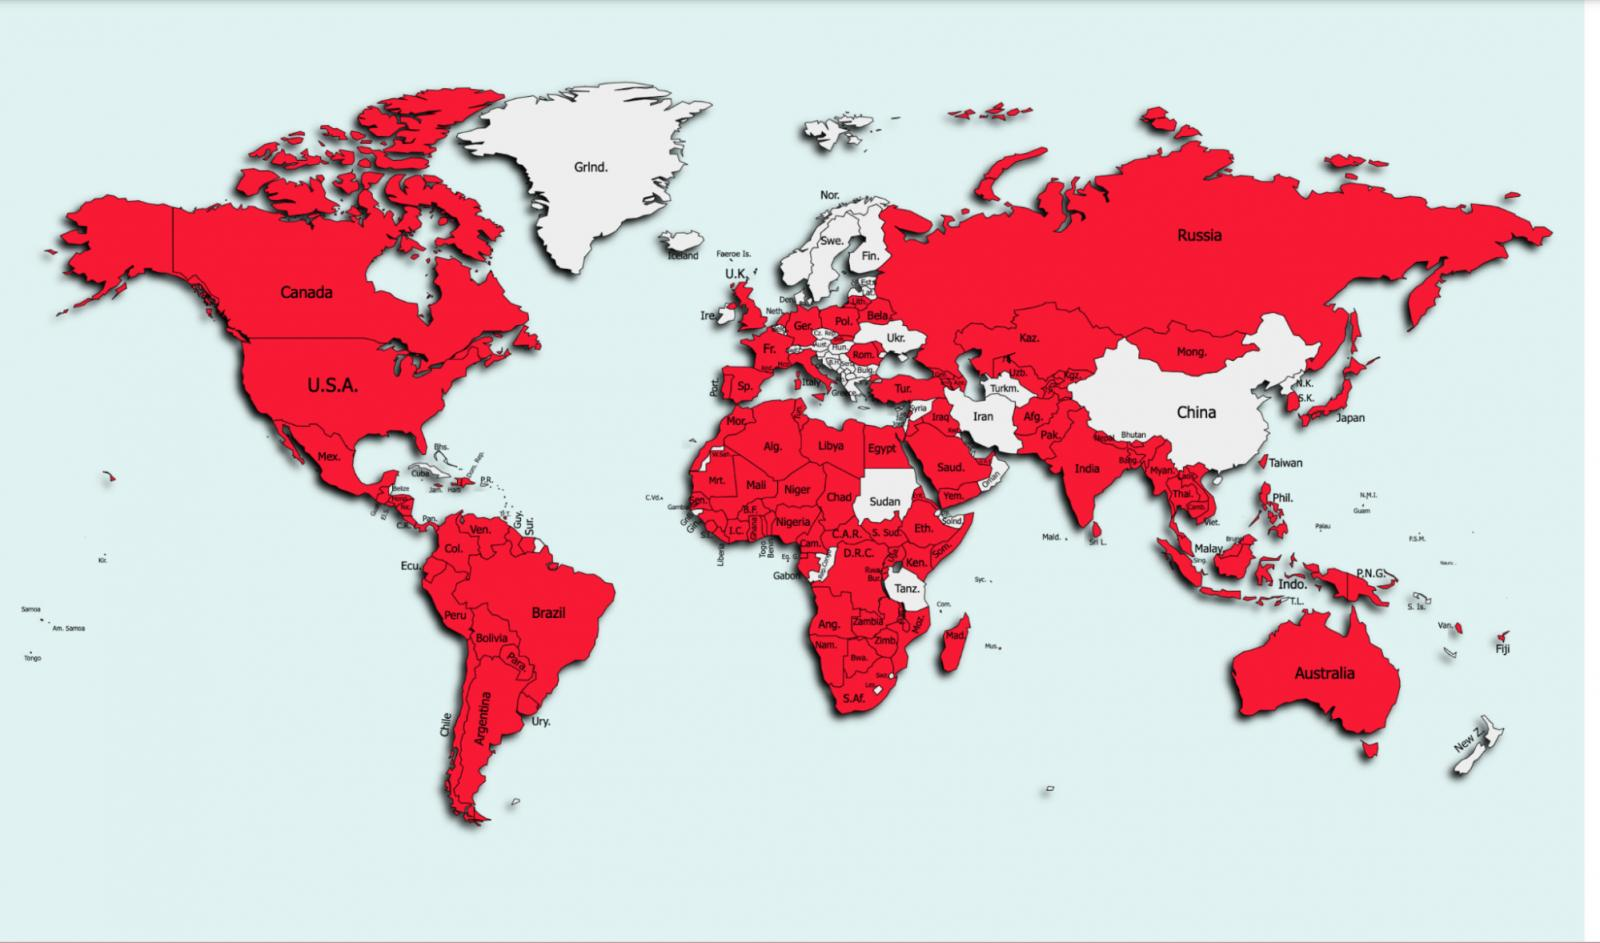 FlyTrap for Android malware spreads to users in 144 countries